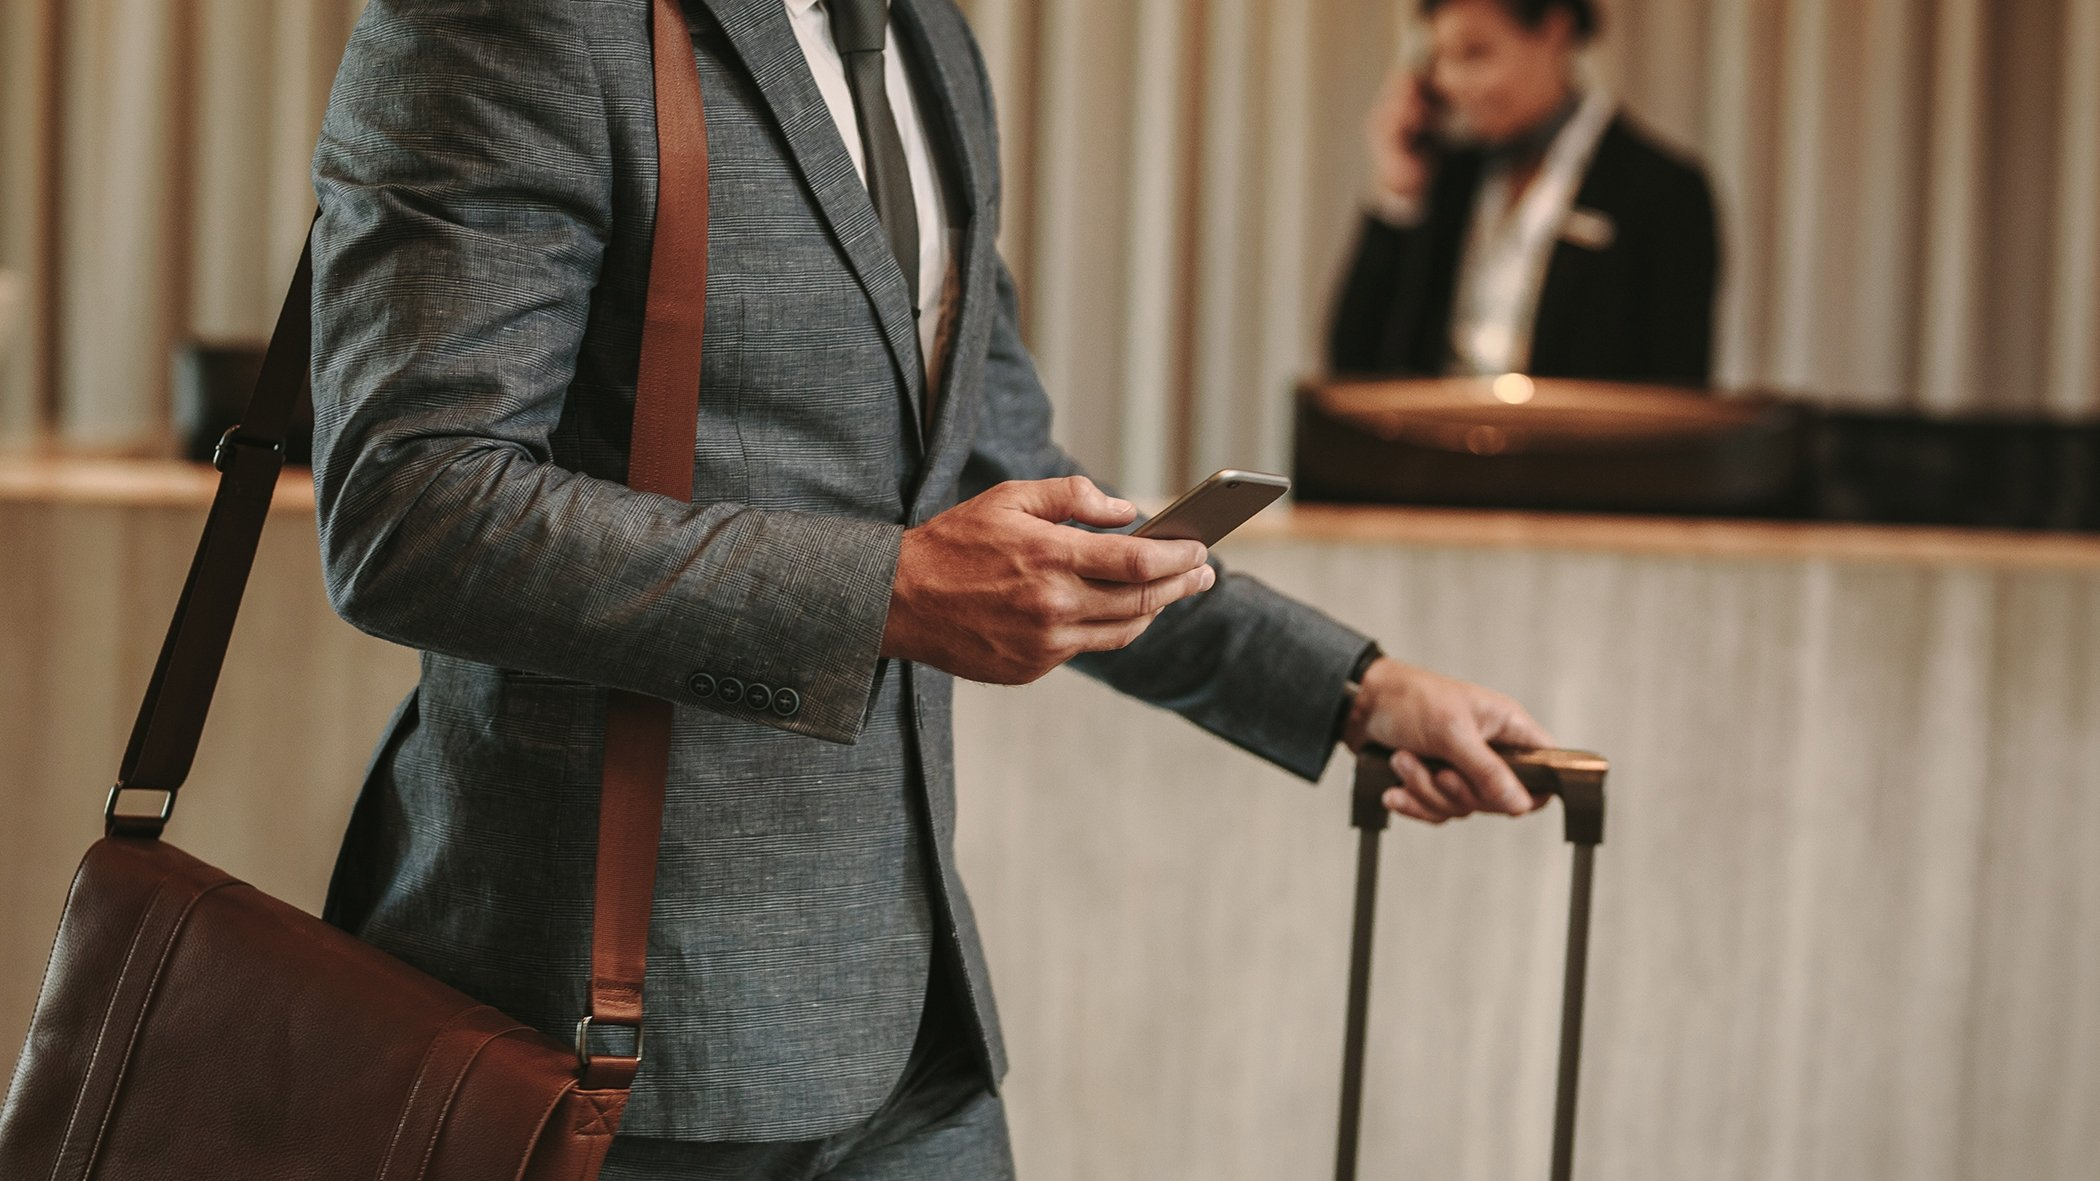 man holding phone at hotel